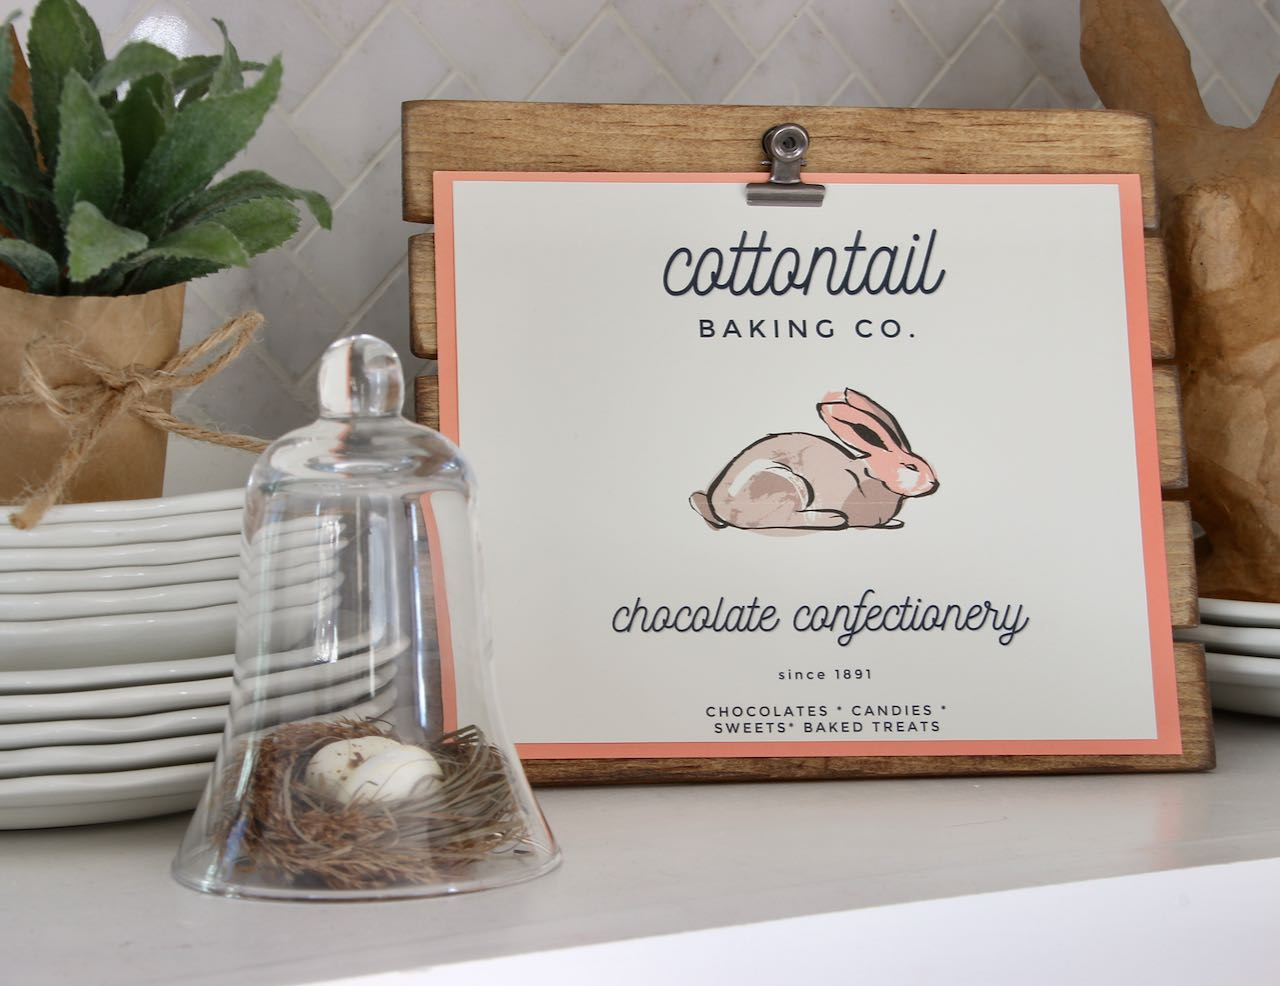 Cottontail Baking Company with Bunny logo on stained easel